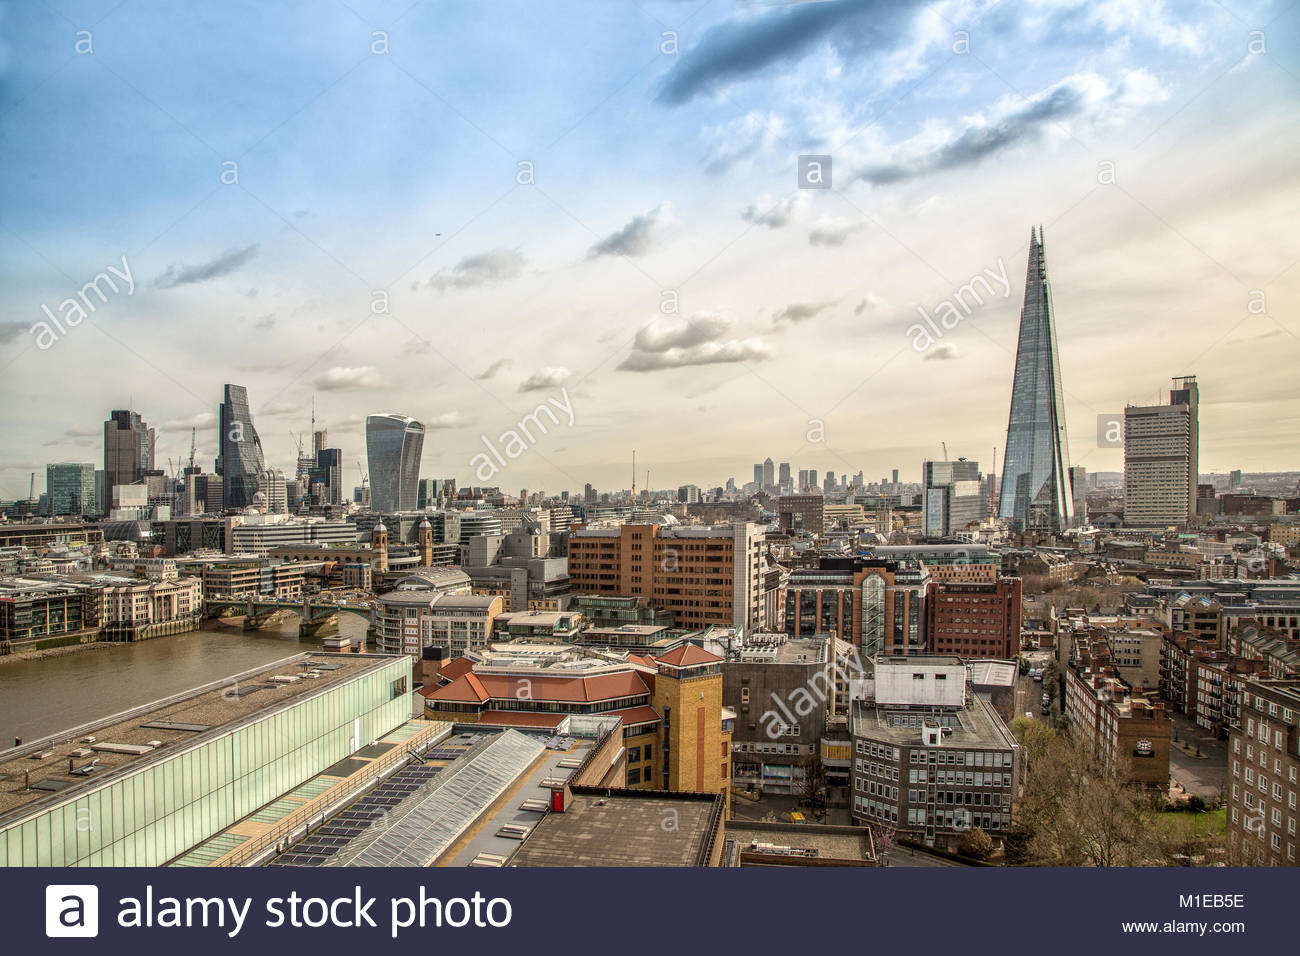 The Shard / Shard London Bridge / Shard of Glass, ein Wolkenkratzer in Londons Stadtteil Southwark mit einer Hoehe Stock Photo